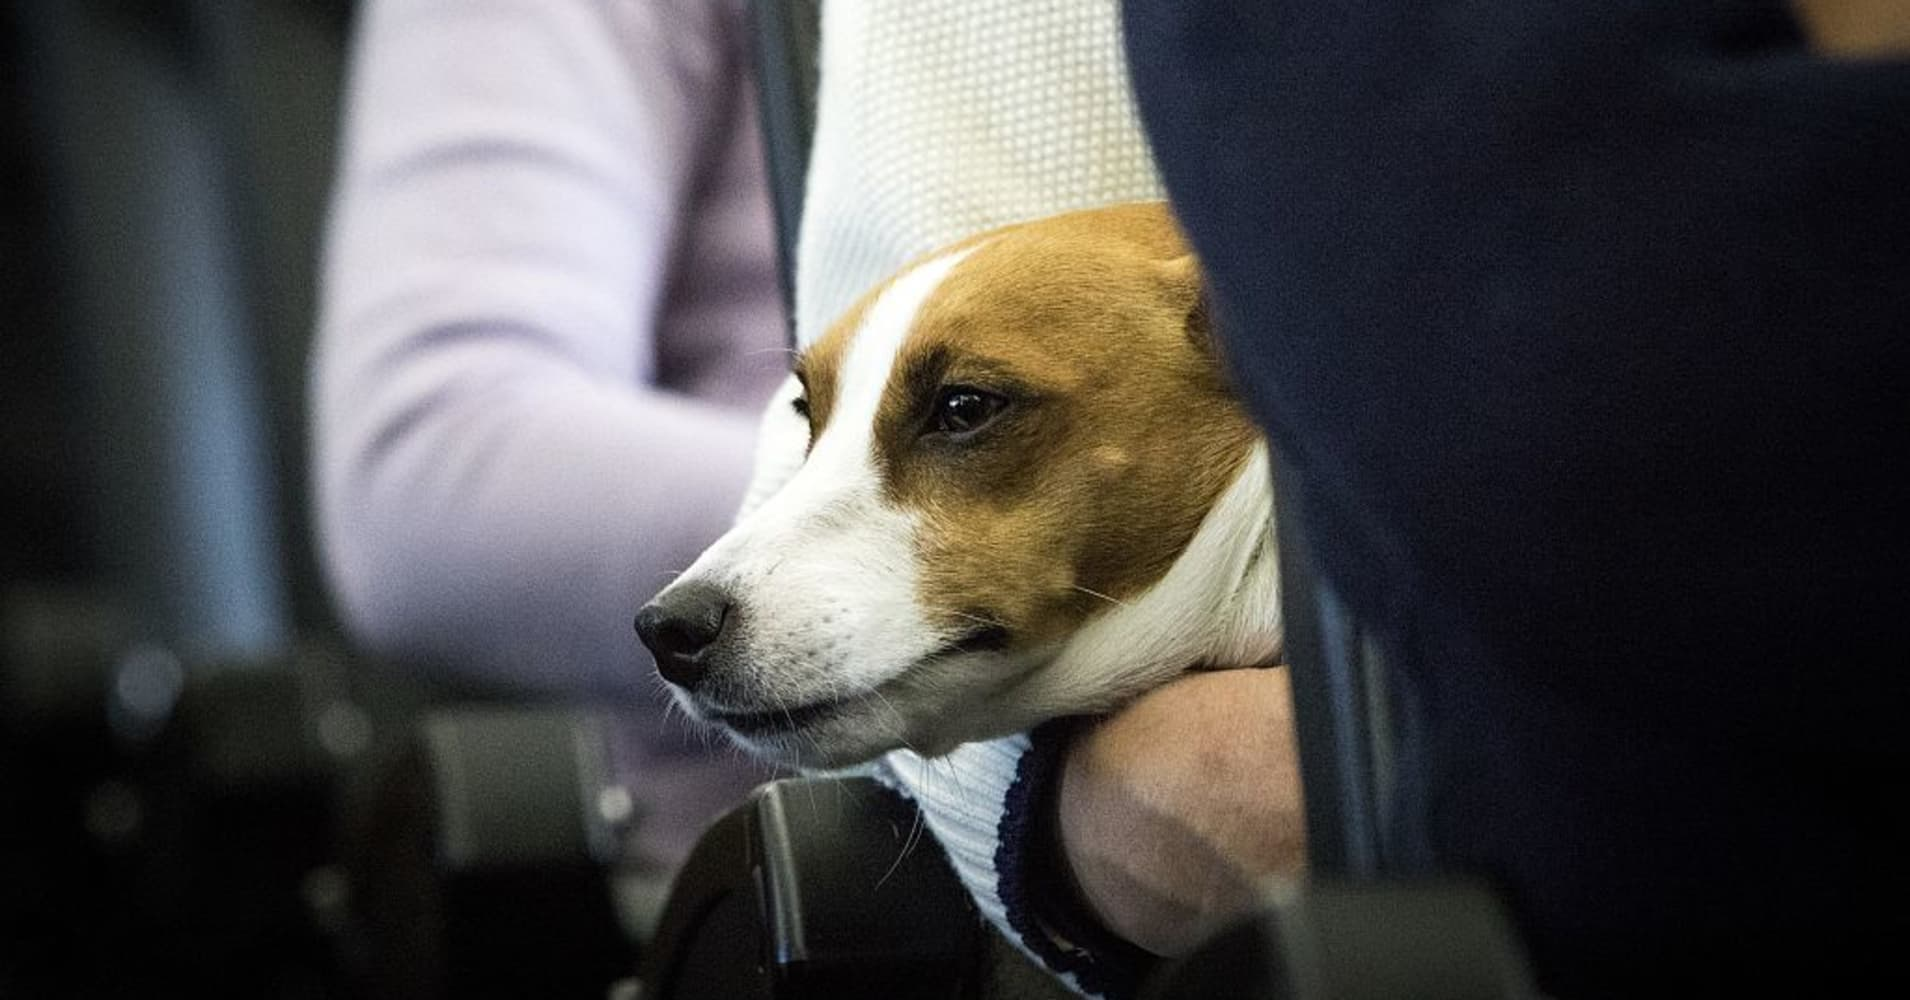 United Airlines joins Delta in banning emotional-support puppies and kittens